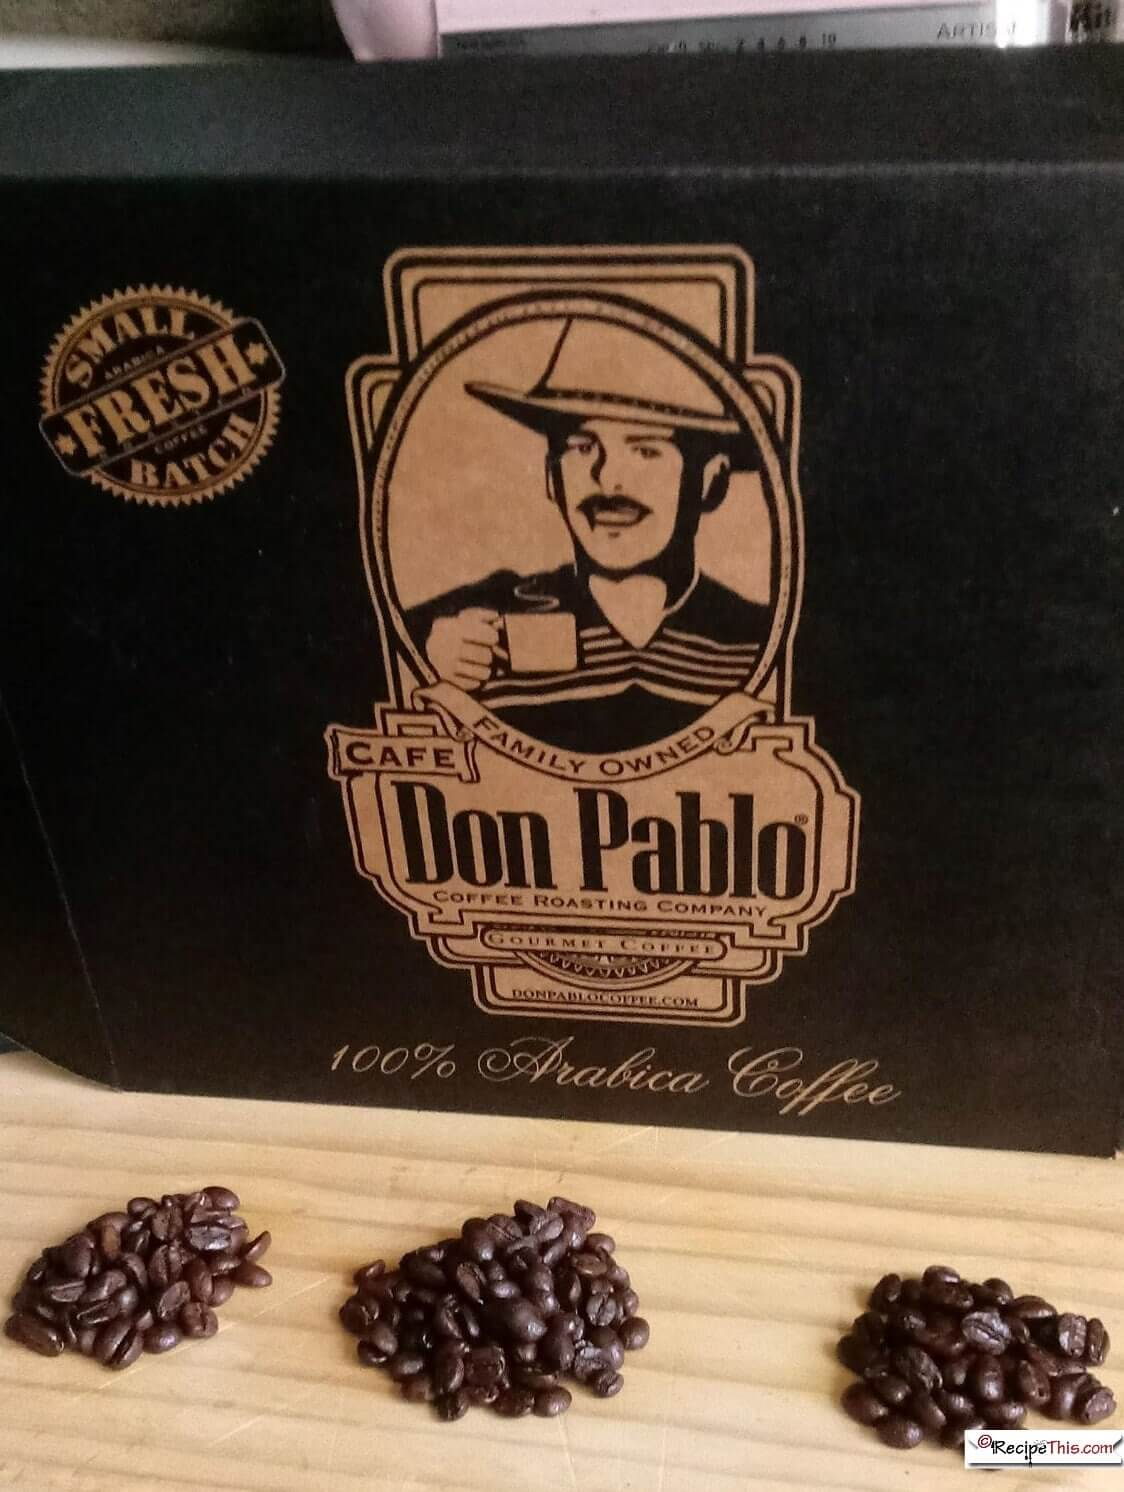 Café Don Pablo Coffee Review - Is The Don Pablo Coffee Worth Buying?